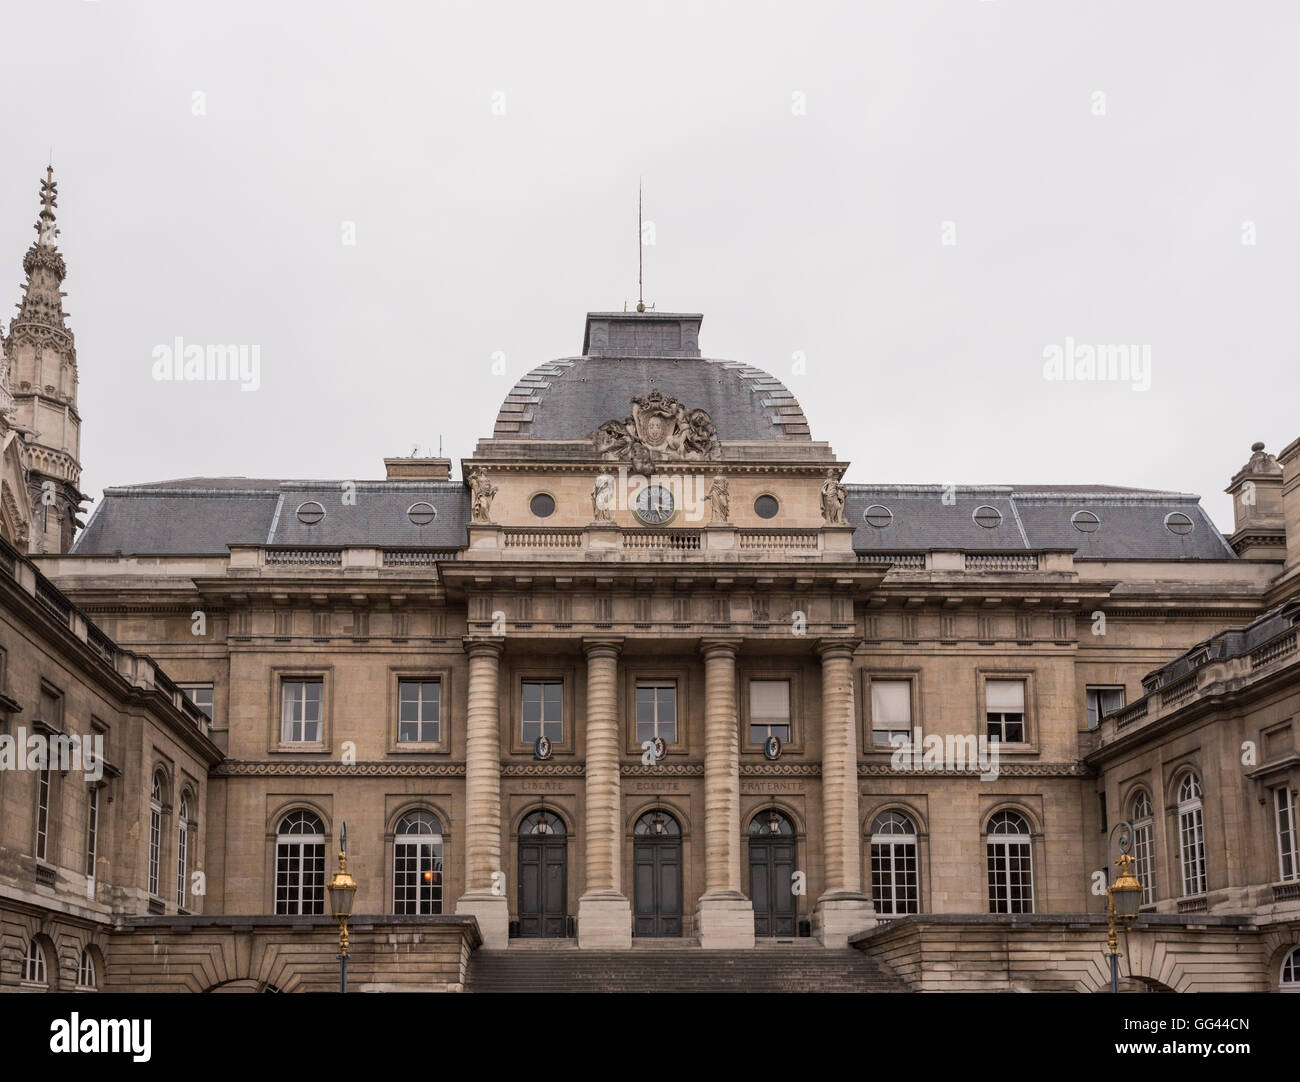 Paris, France March 26, 2016: Paris courthouse facade on an overcast day - Stock Image